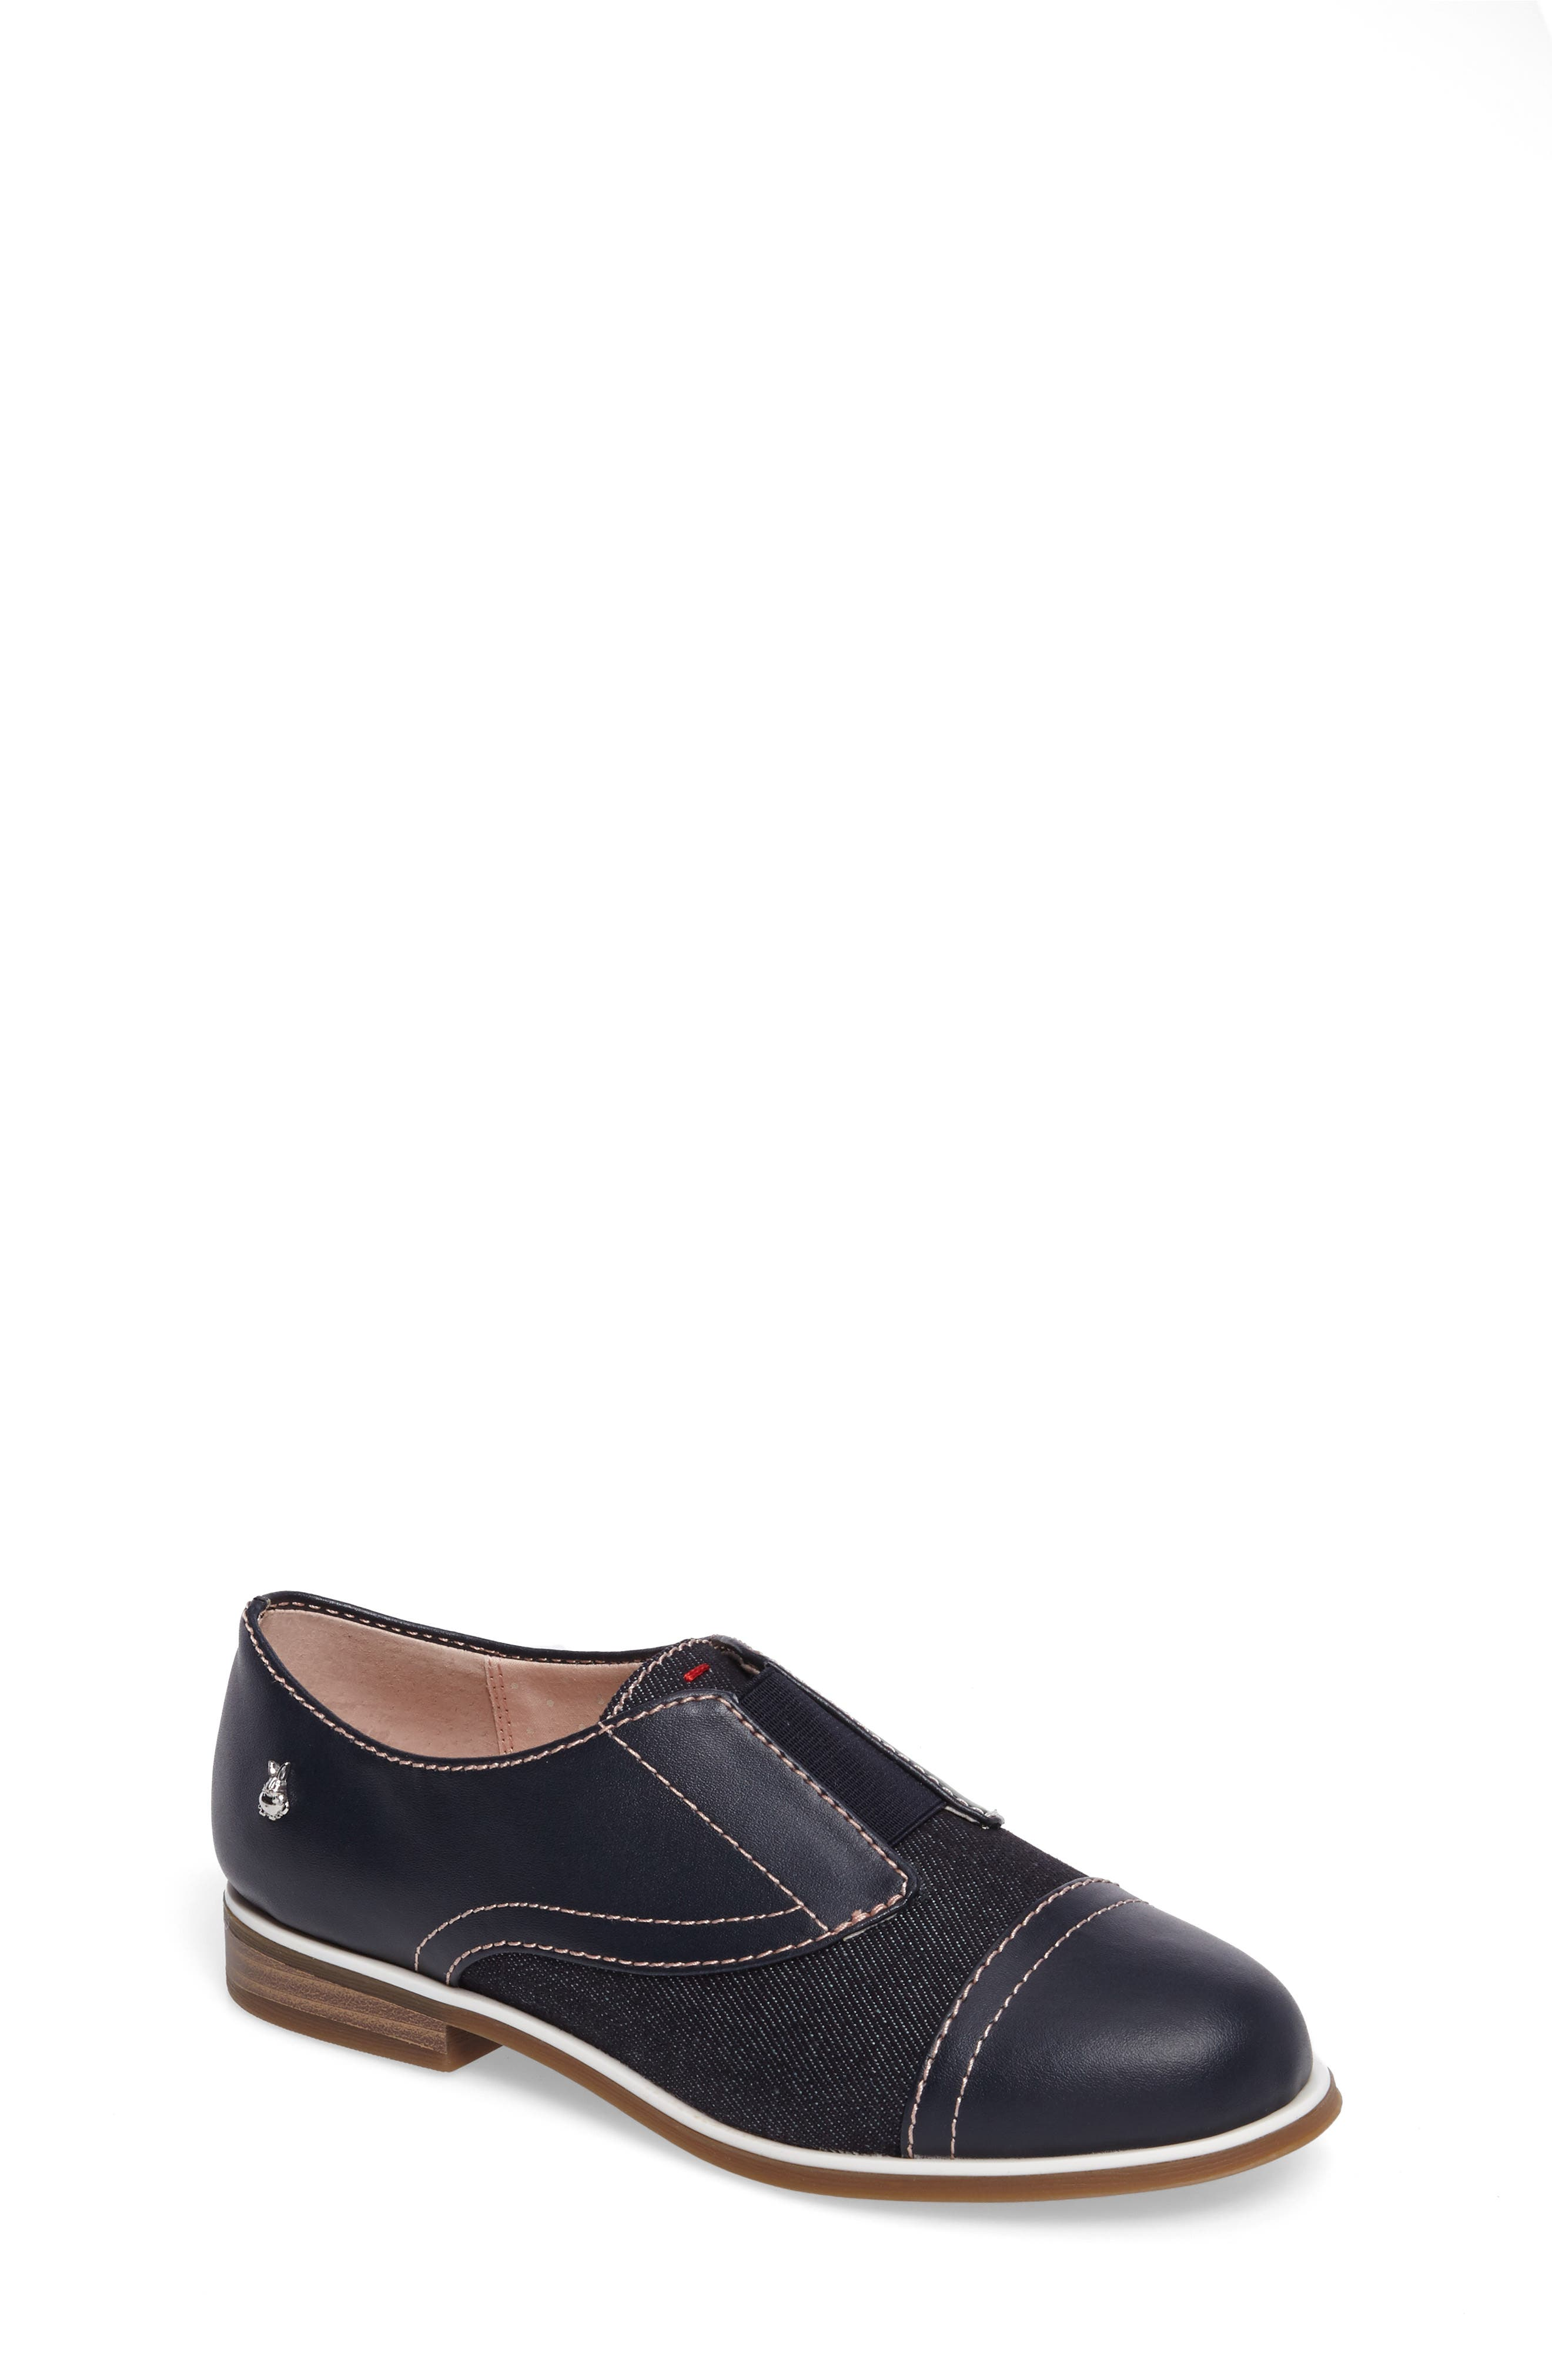 ED Ellen Degeneres Kassie Laceless Cap Toe Oxford (Toddler, Little Kid & Big Kid)